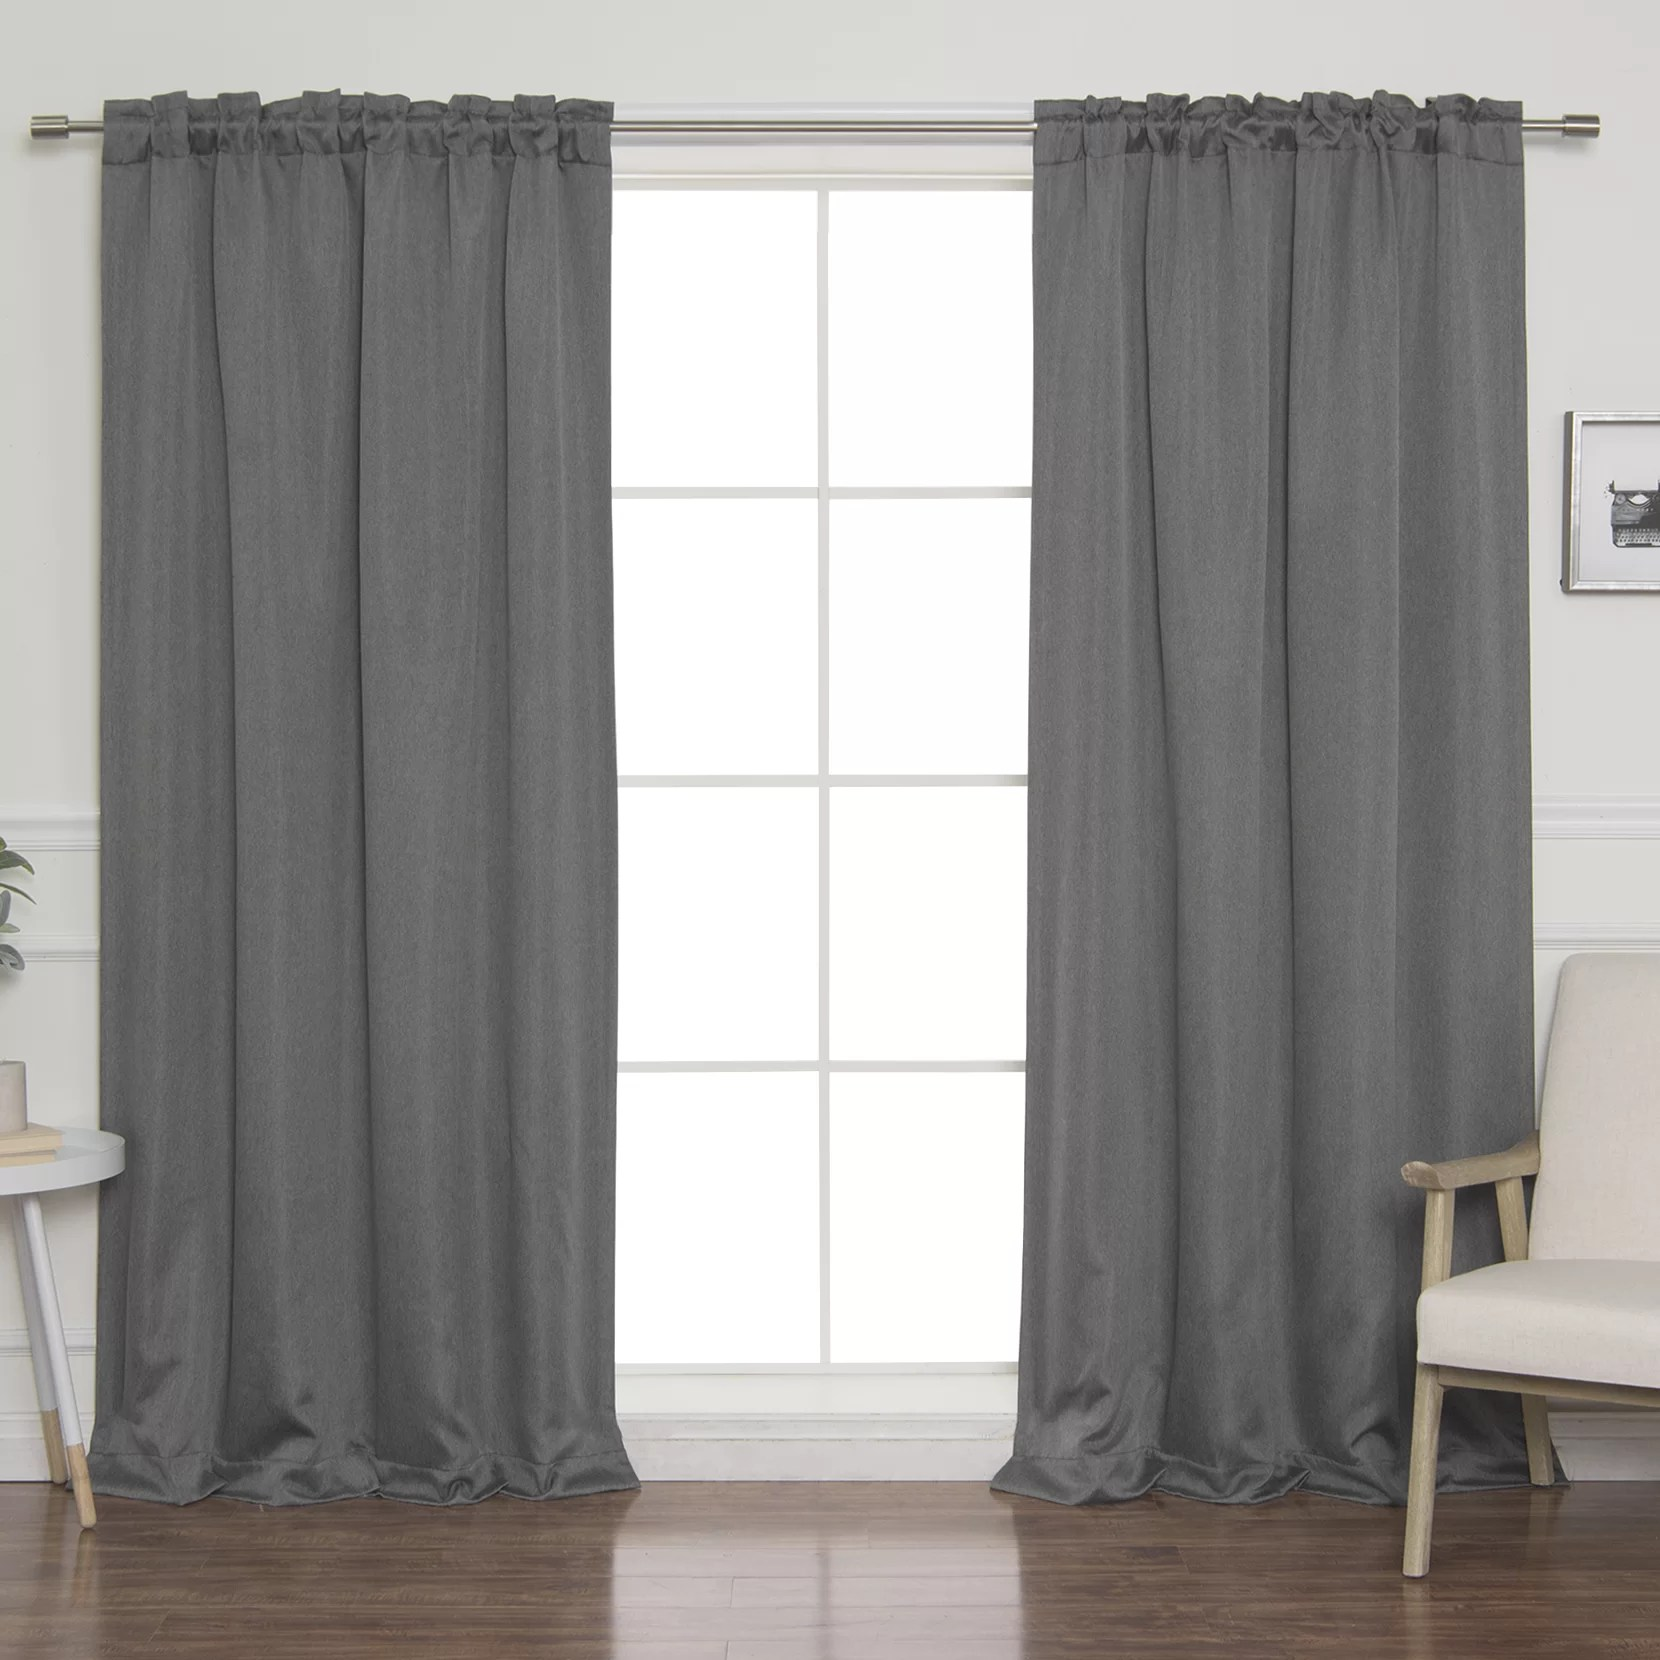 Tab Top Curtain Vicenta Basketweave Faux Linen Solid Blackout Back Tab Top Curtain Panels